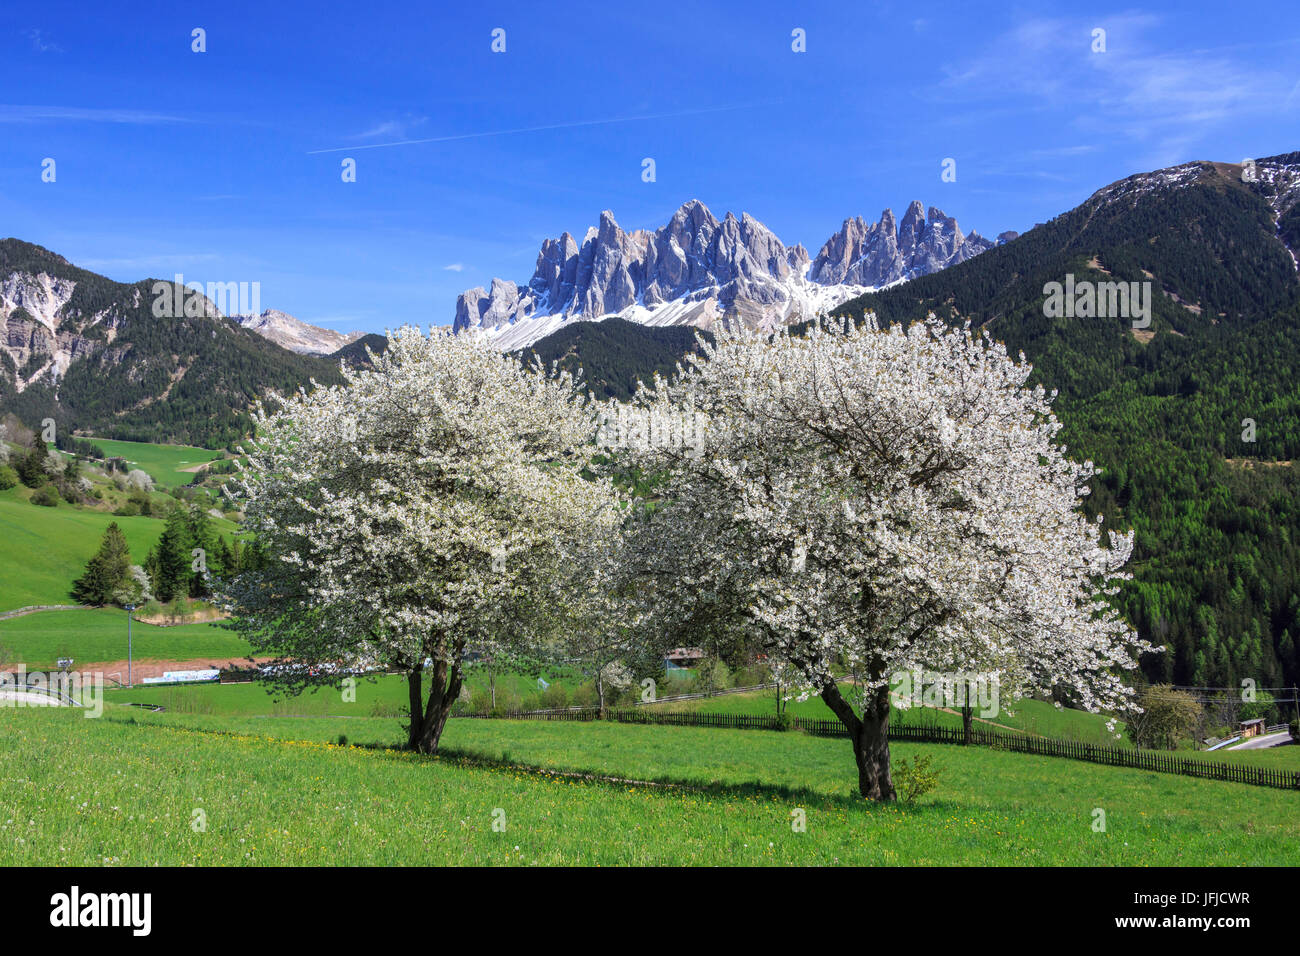 The Odle in background enhanced by flowering trees, Funes Valley, South Tyrol Dolomites Italy Europe - Stock Image